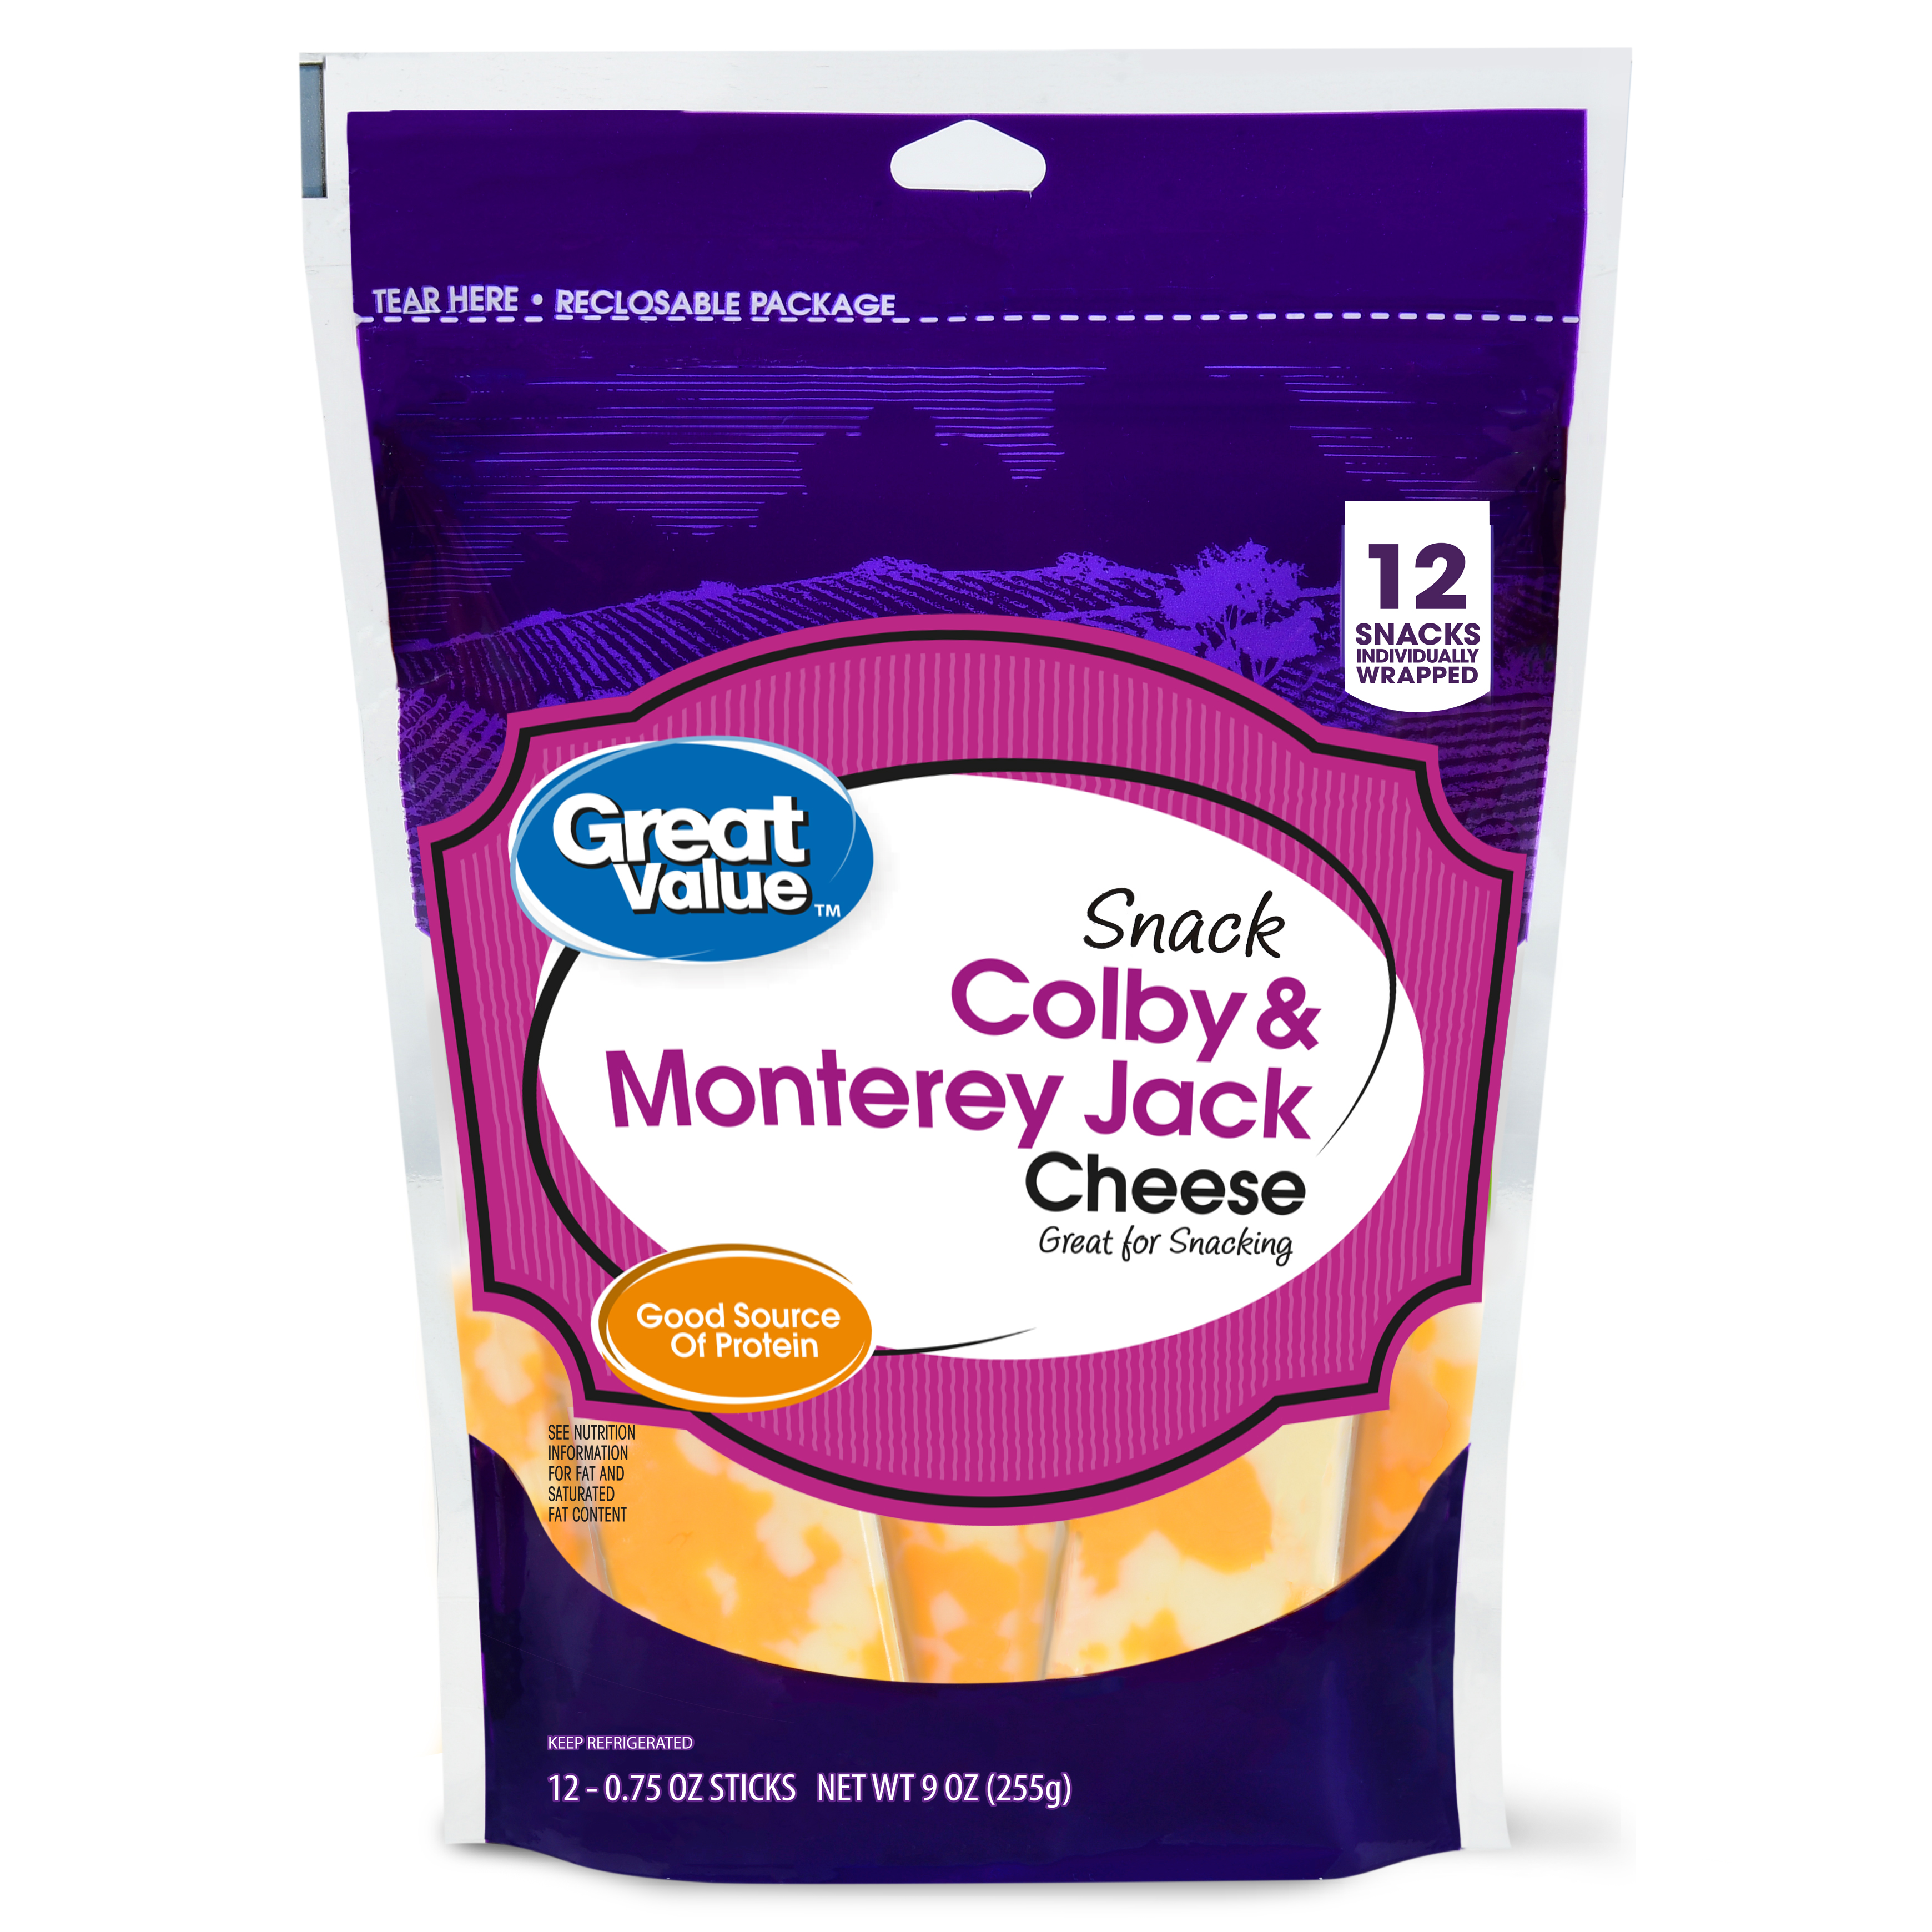 Great Value, Colby & Monterey Jack Cheese Snack Blocks, 9 Oz., 12 Count